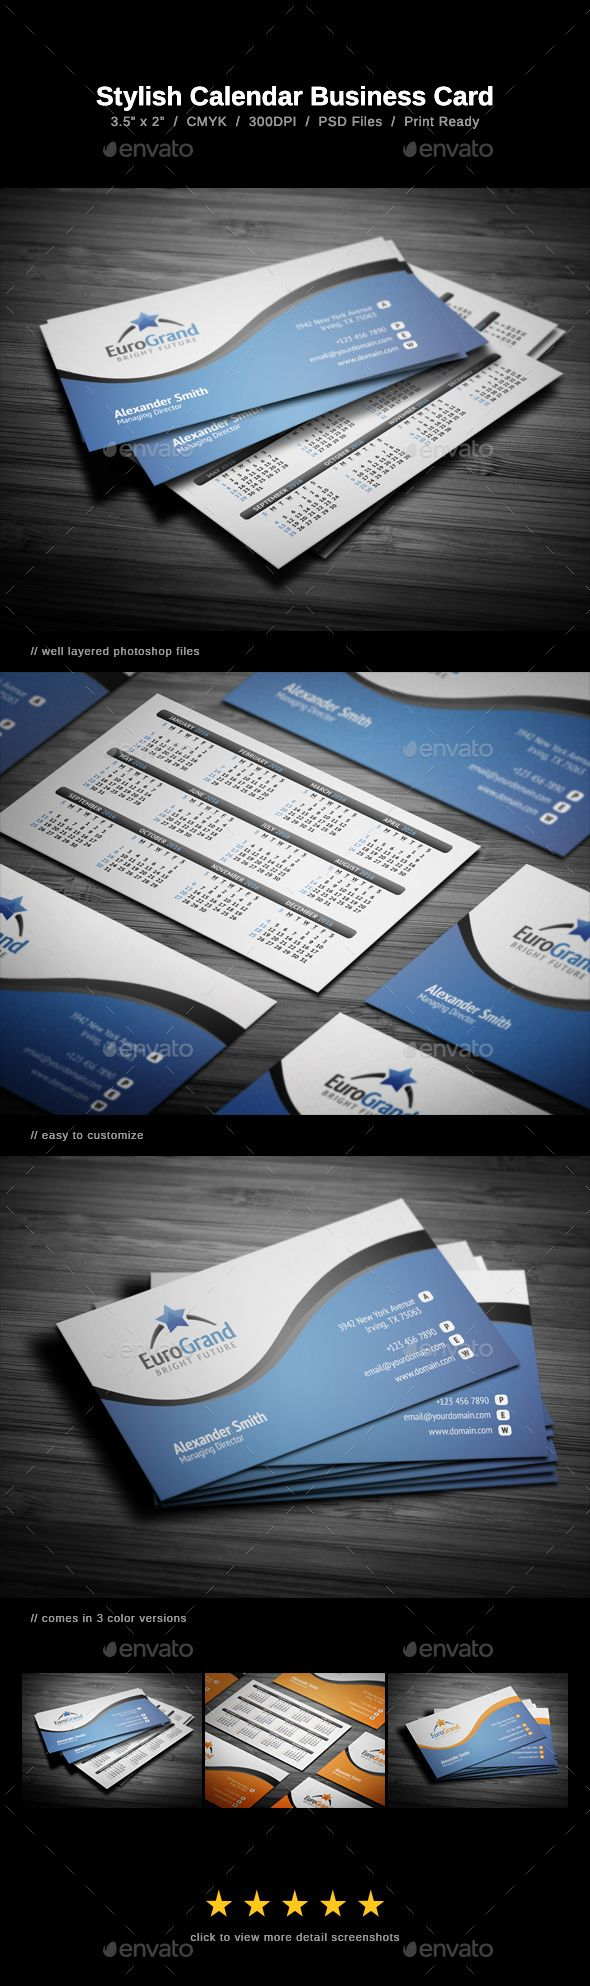 Stylish calendar business card business cards print templates and stylish calendar business card calendar template psd download here httpgraphicriver wajeb Choice Image